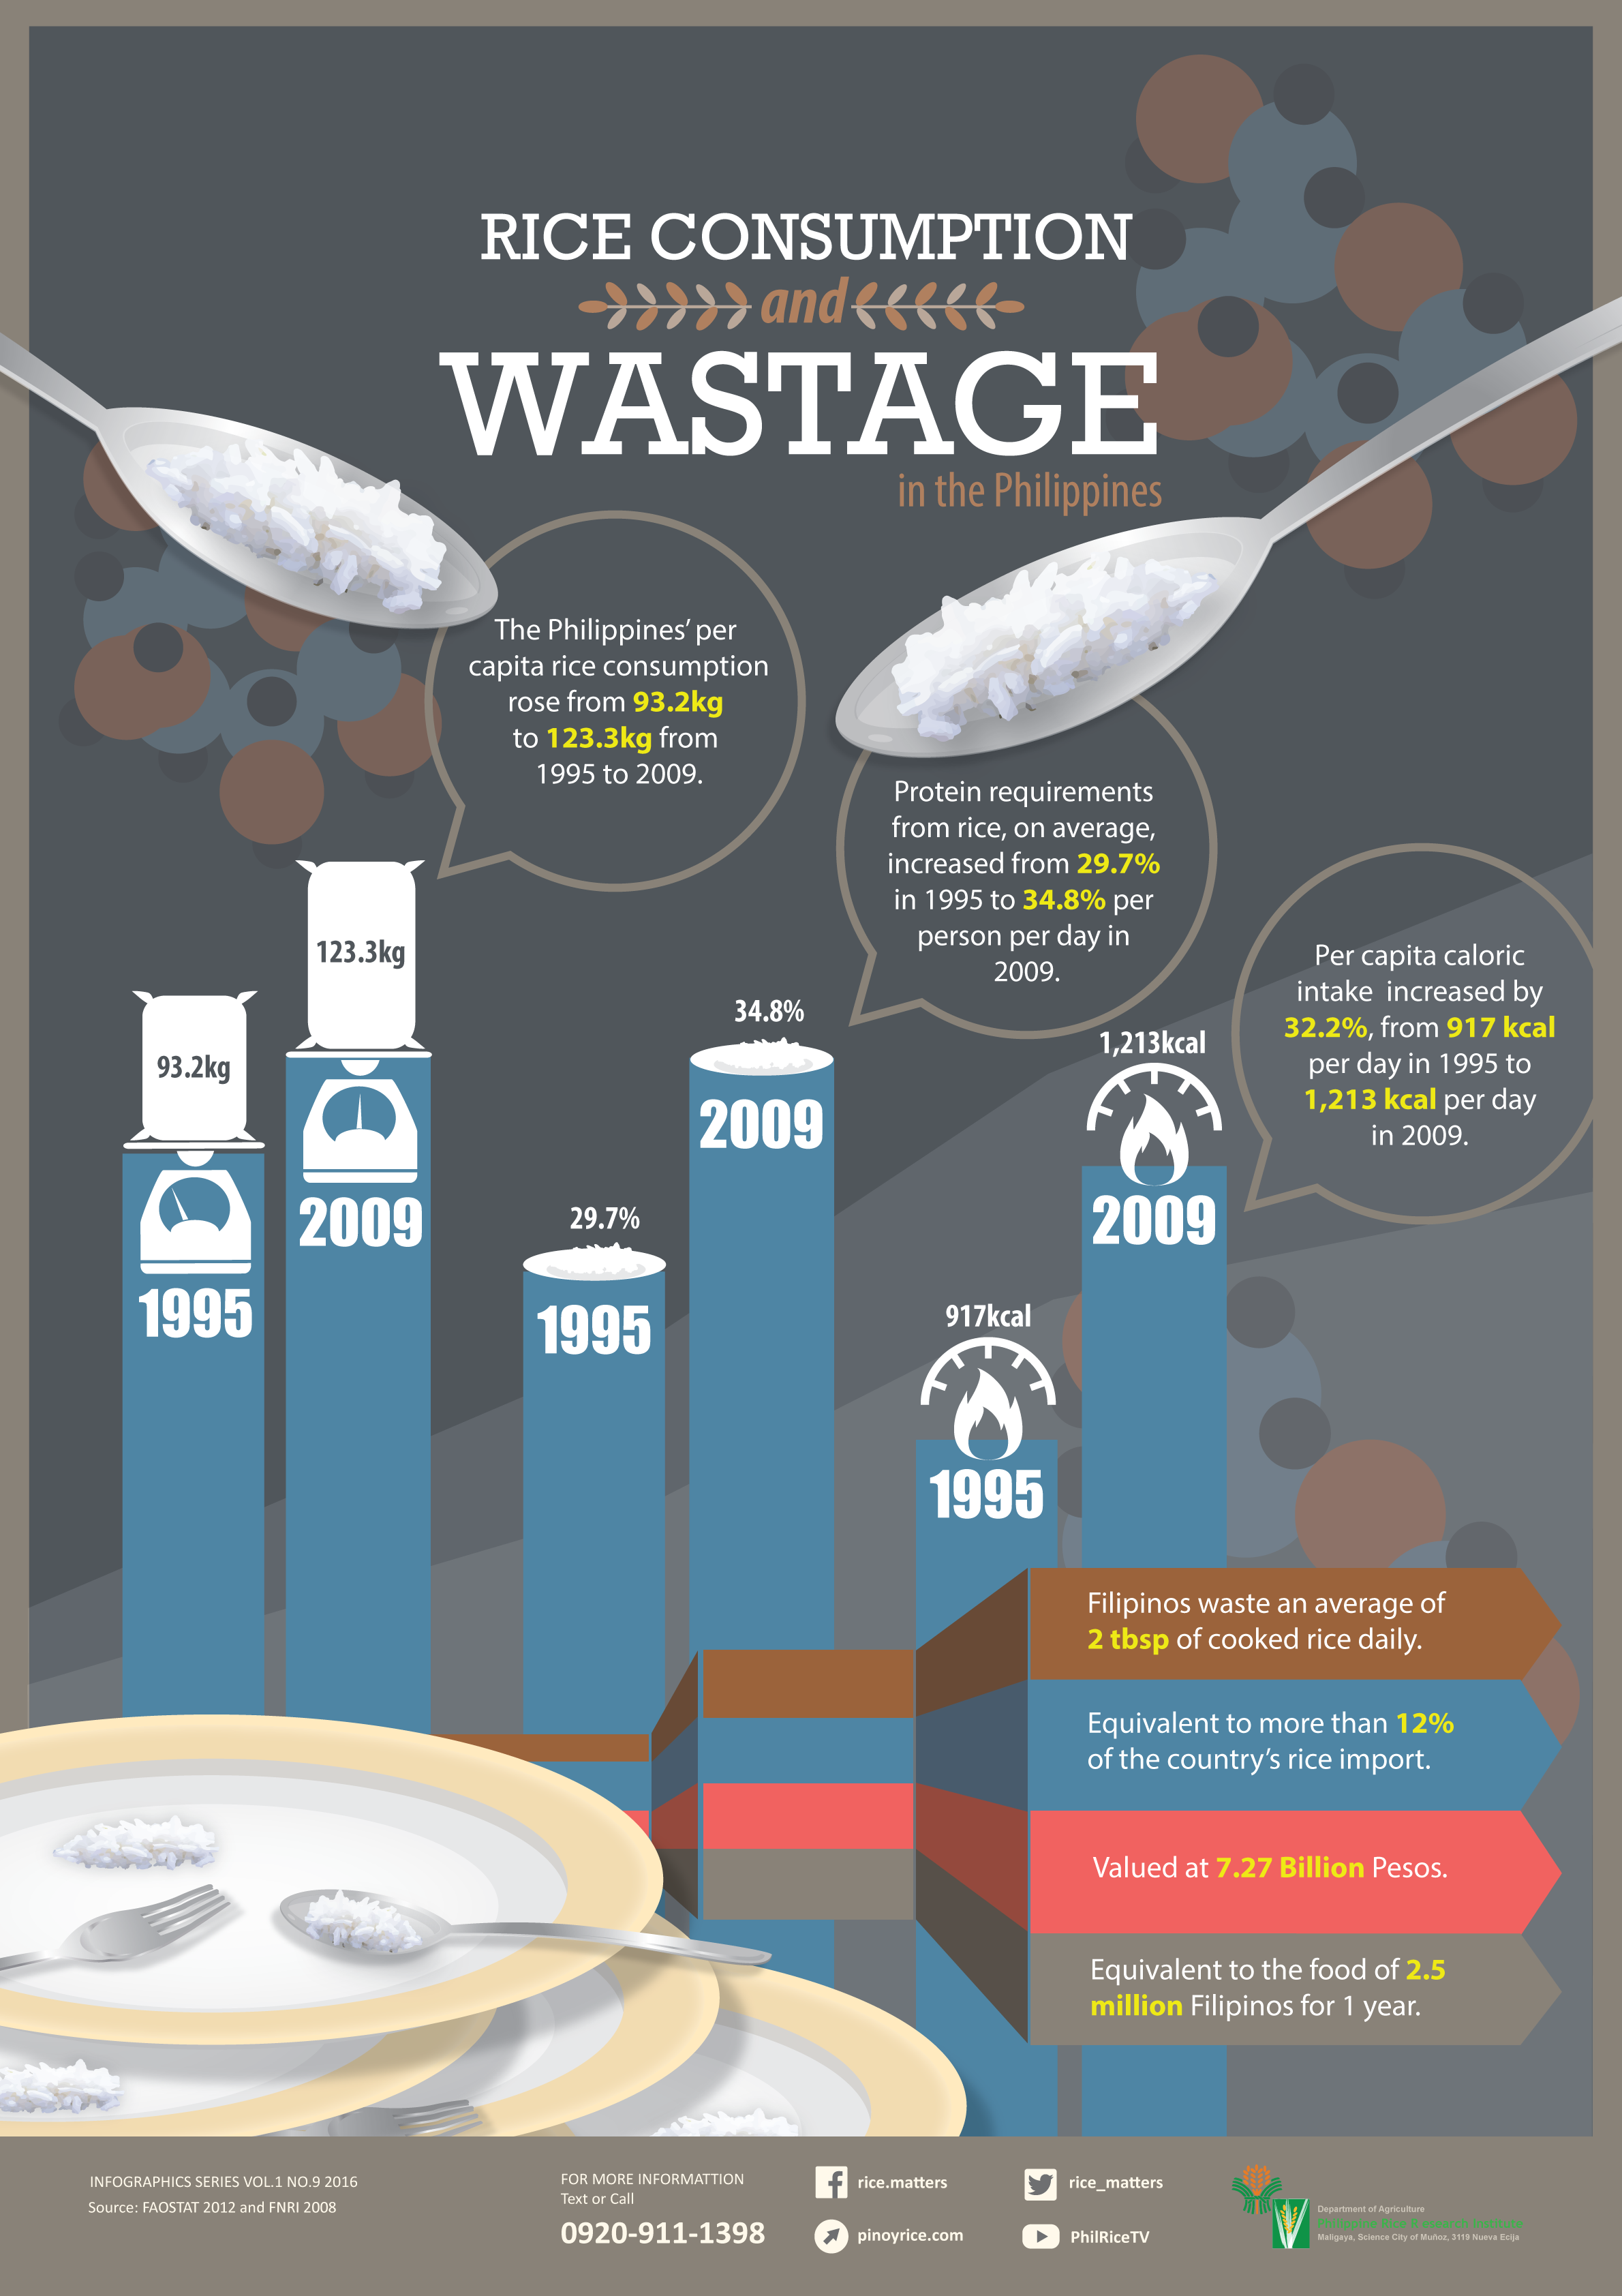 Rice-consumption-and-wastage_A4 Vol1No9